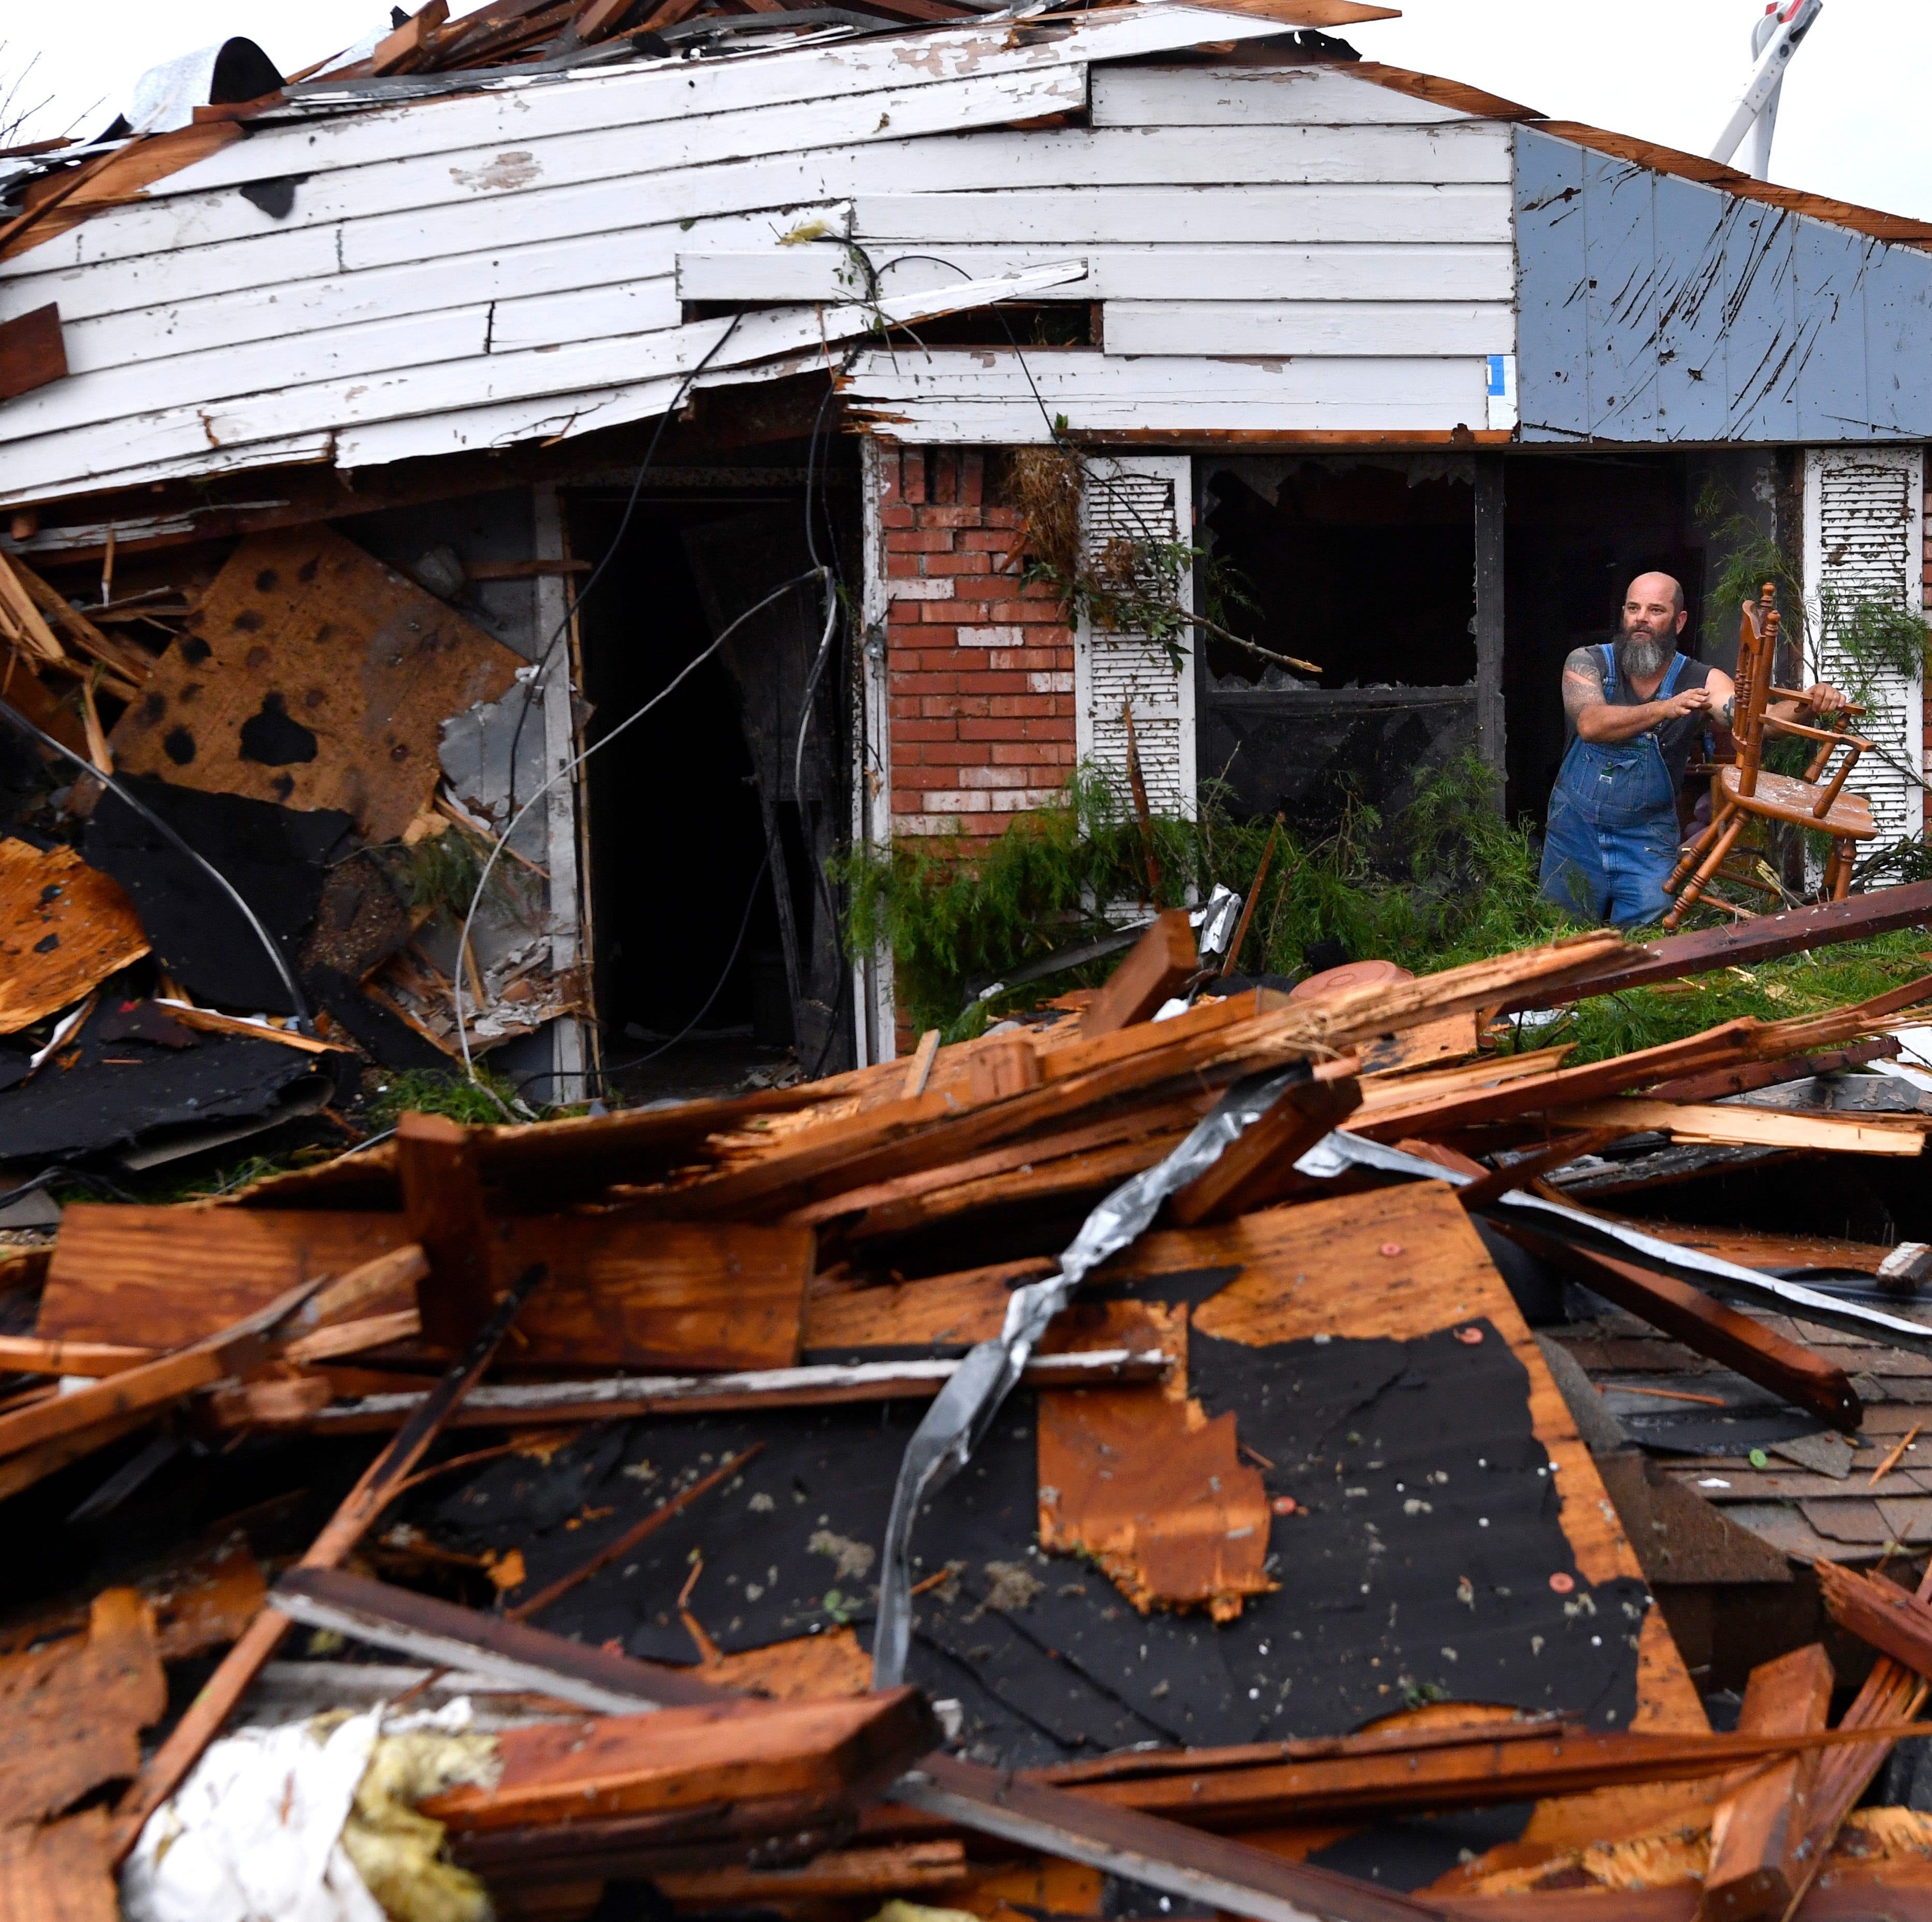 Tornadoes roar through nation: 'All the windows exploded, it was just chaos'